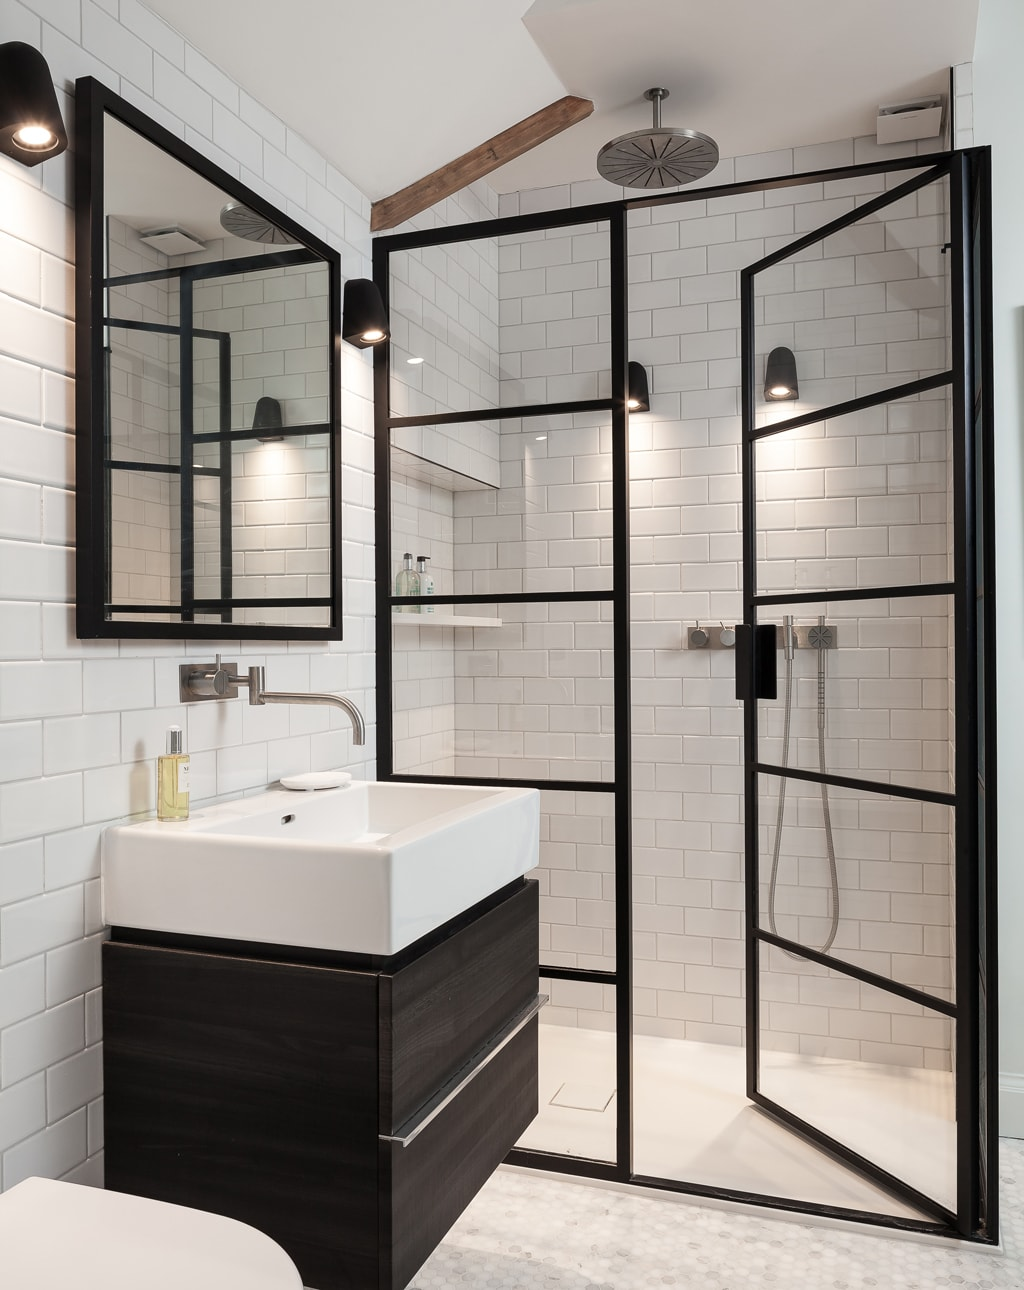 Industrial style bathroom with metal framed glass doors to the shower